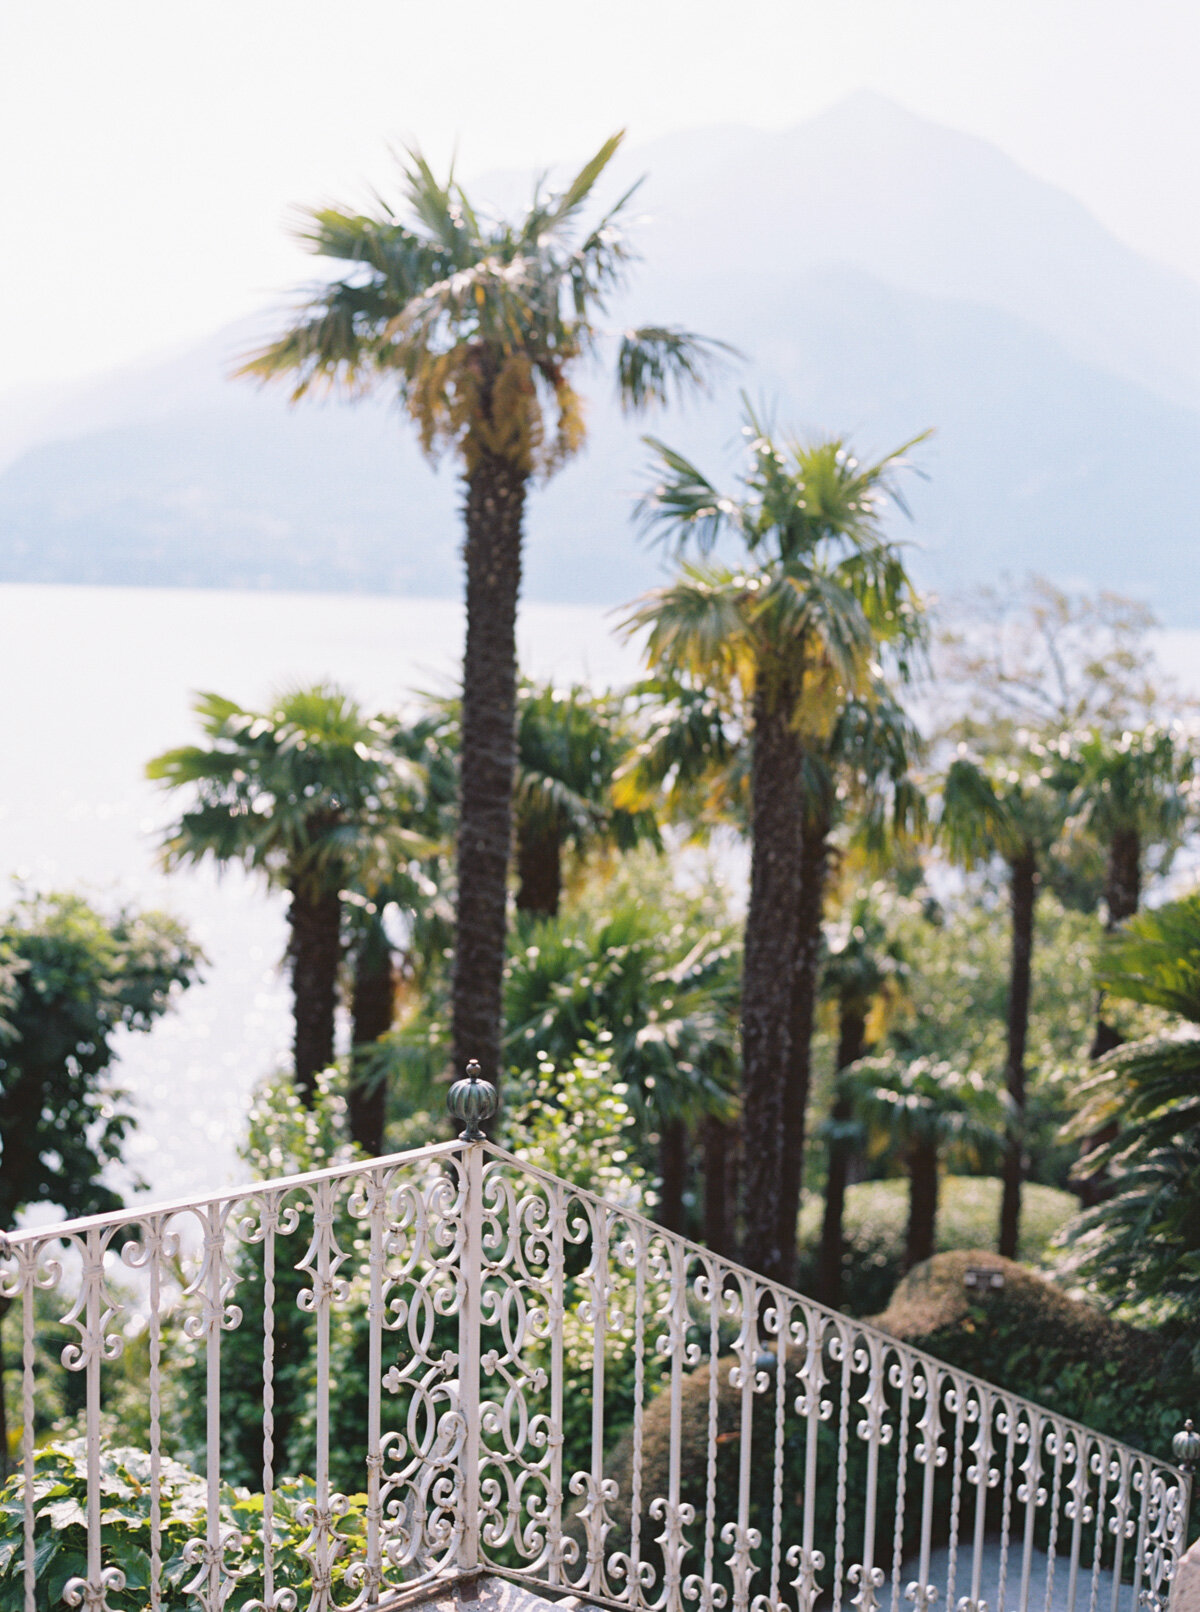 Lake-Como-Villa-Cipressi-Wedding-Katie-Grant-destination-wedding (39 of 93).jpg